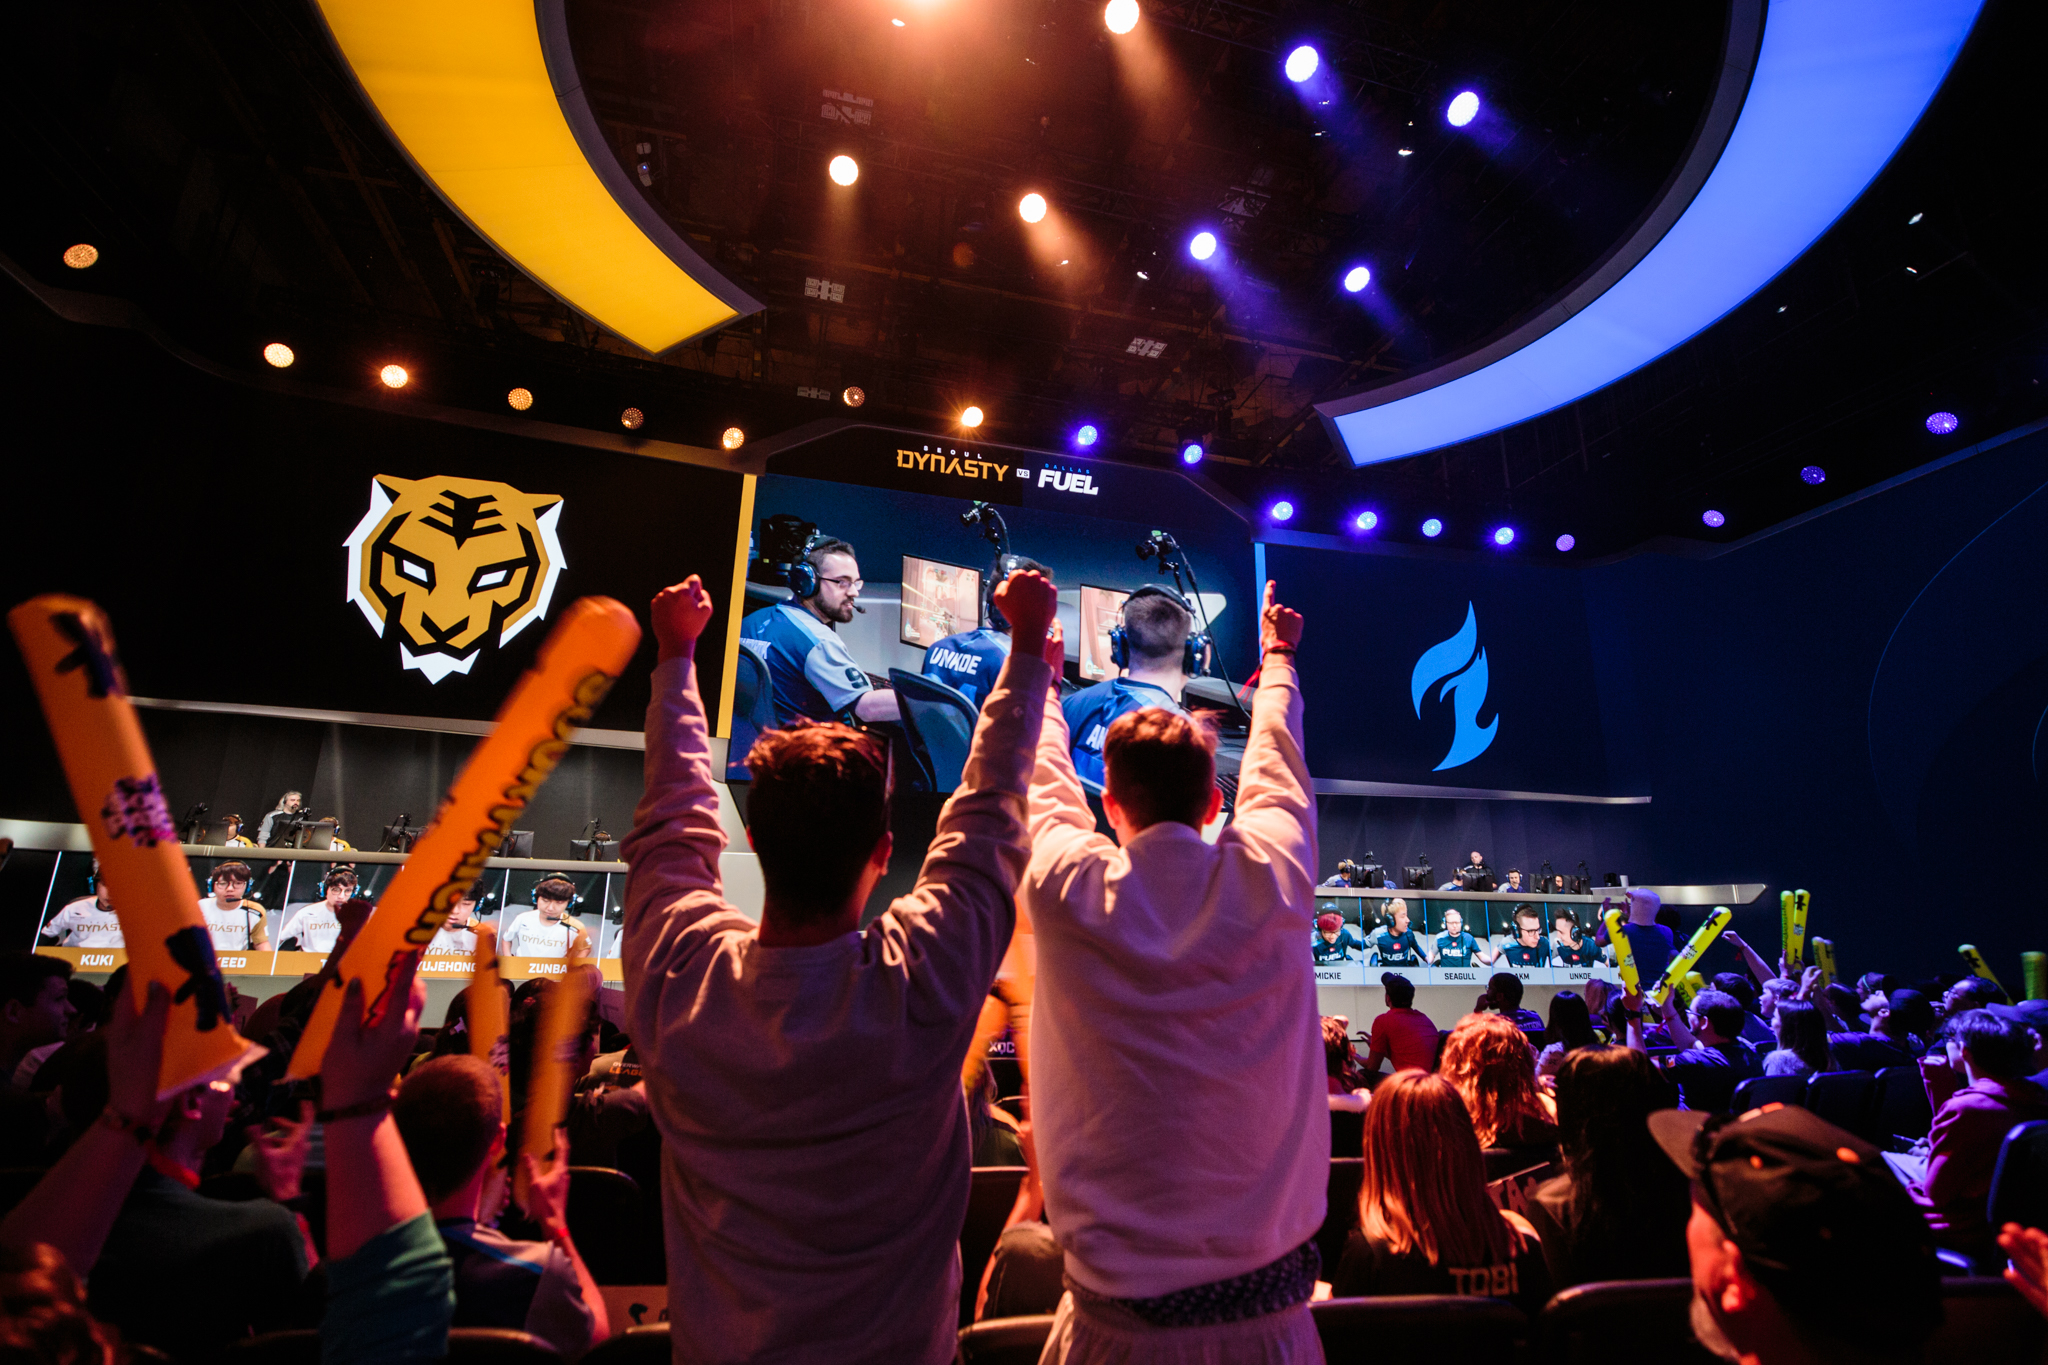 Overwatch League - fans cheer at the Blizzard Arena during a match between the Dallas Fuel and Seoul Dynasty